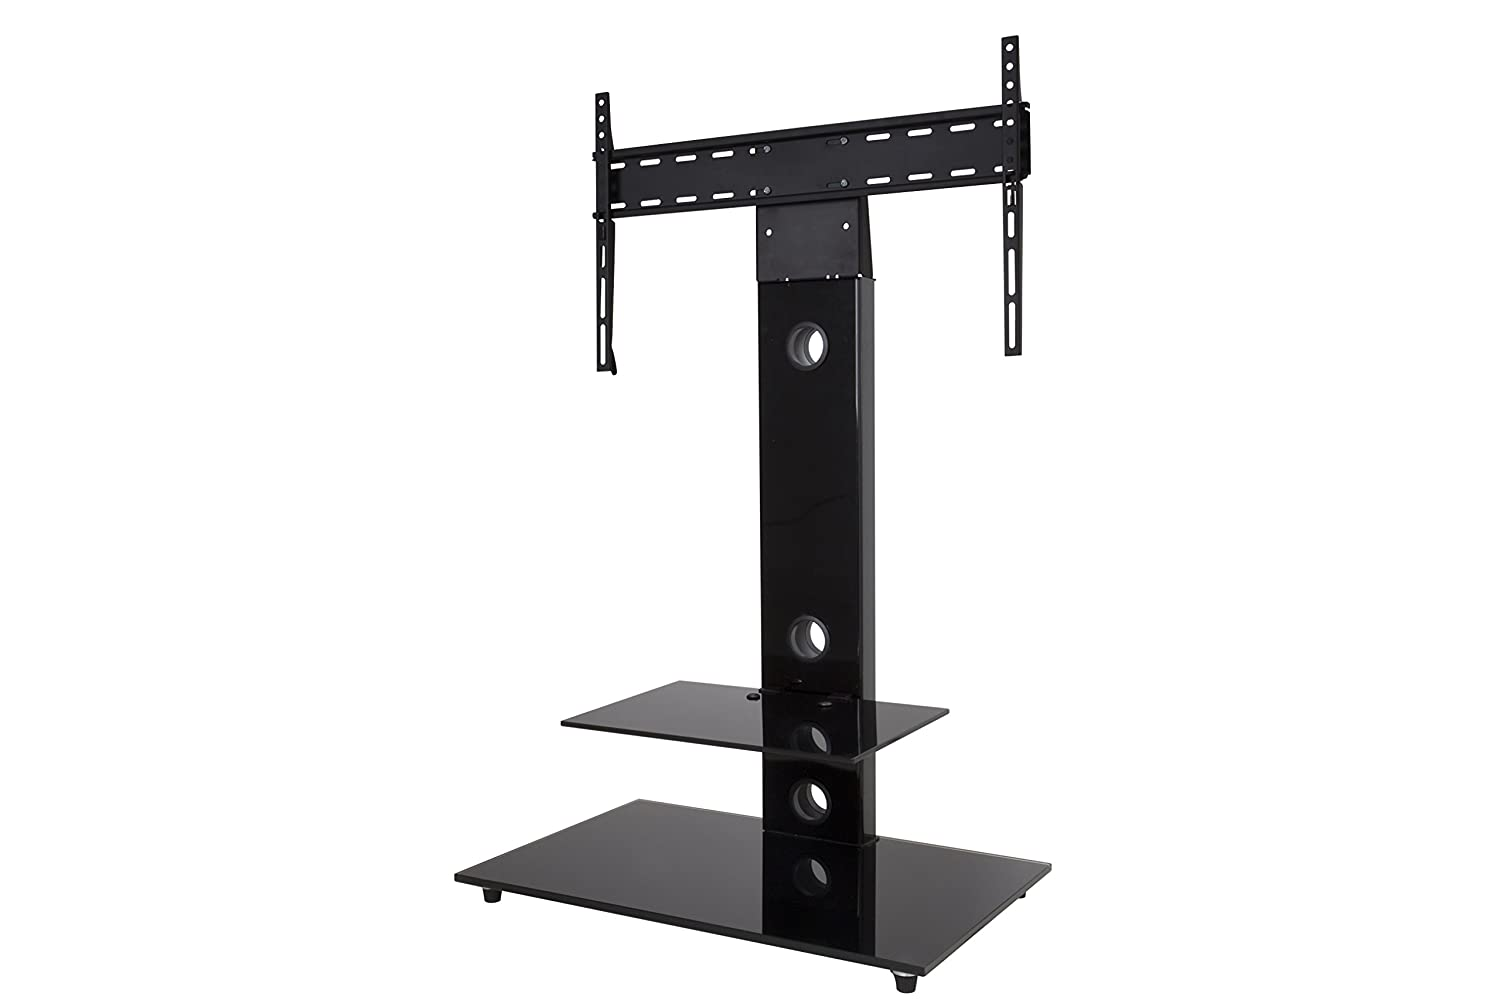 Floor tv stands for 55 inch flat screens - Amazon Com Avf Fsl700leb A Lesina Tv Floor Stand With Tv Mounting Column For 32 Inch To 65 Inch Tvs Black Home Audio Theater